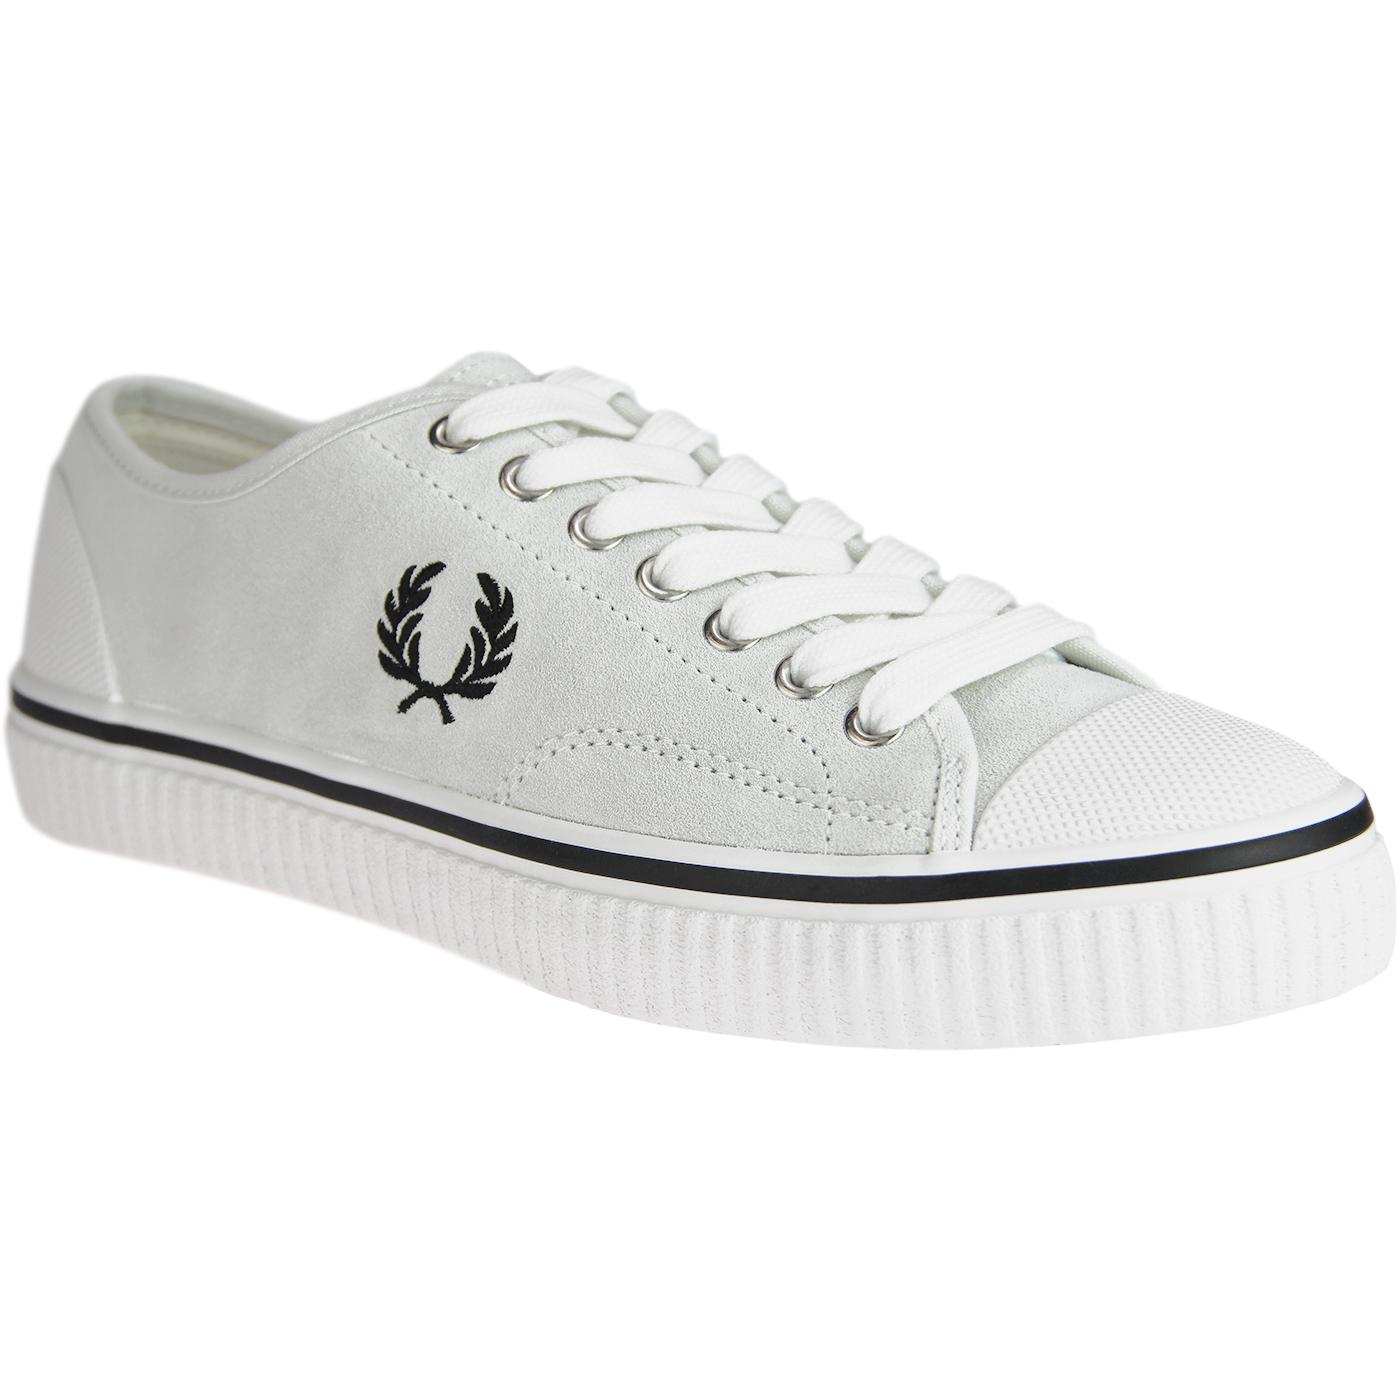 Hughes FRED PERRY Retro Low Suede Trainers (White)